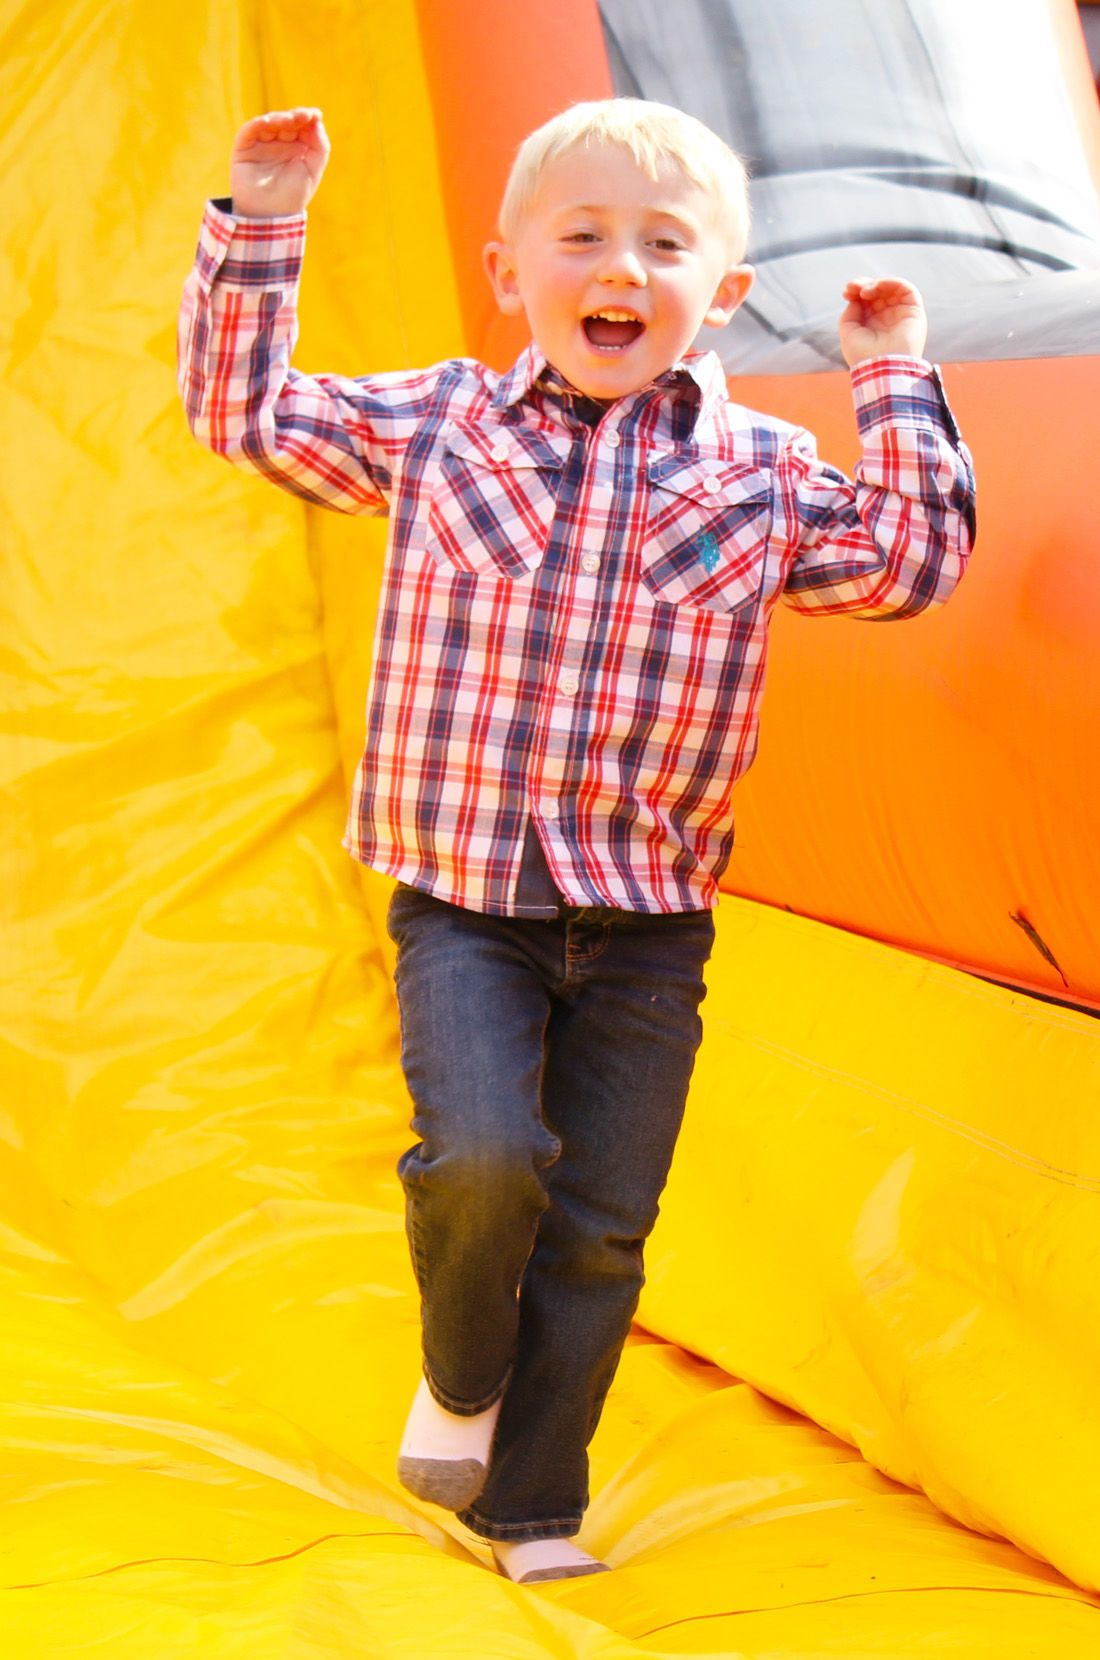 Bouncy house and slide bring smiles